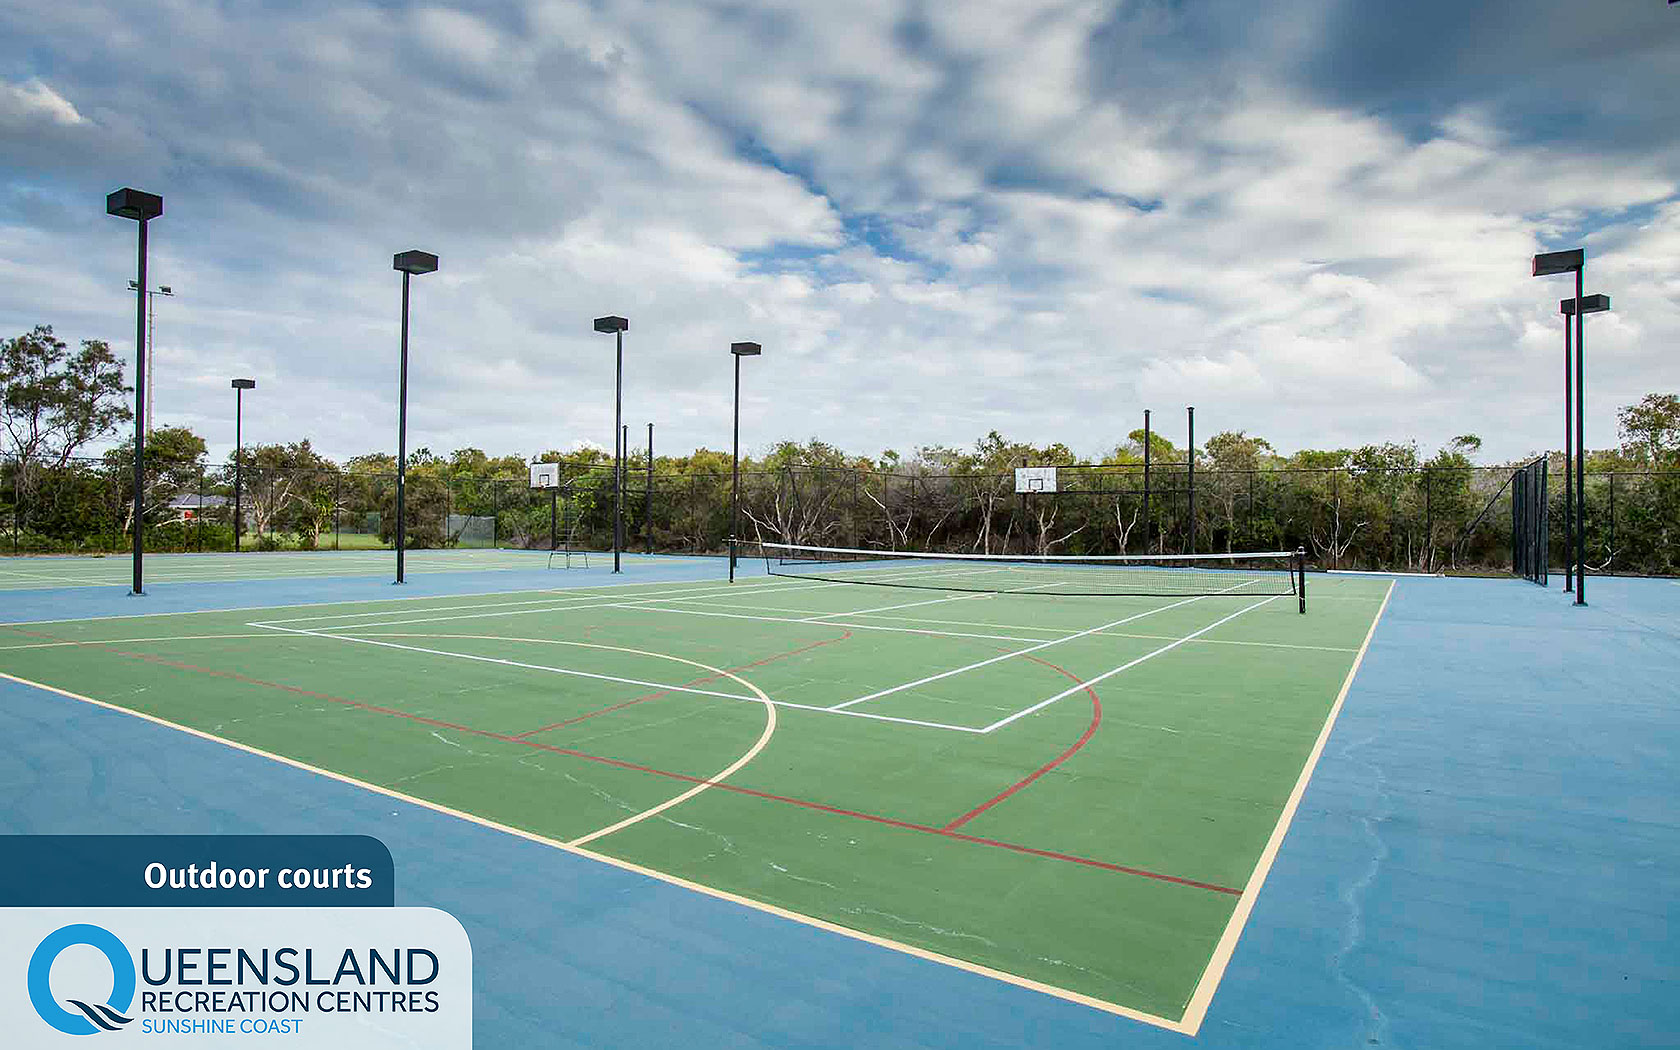 Fence-enclosed outdoor courts set up for tennis at the Sunshine Coast Recreation Centre